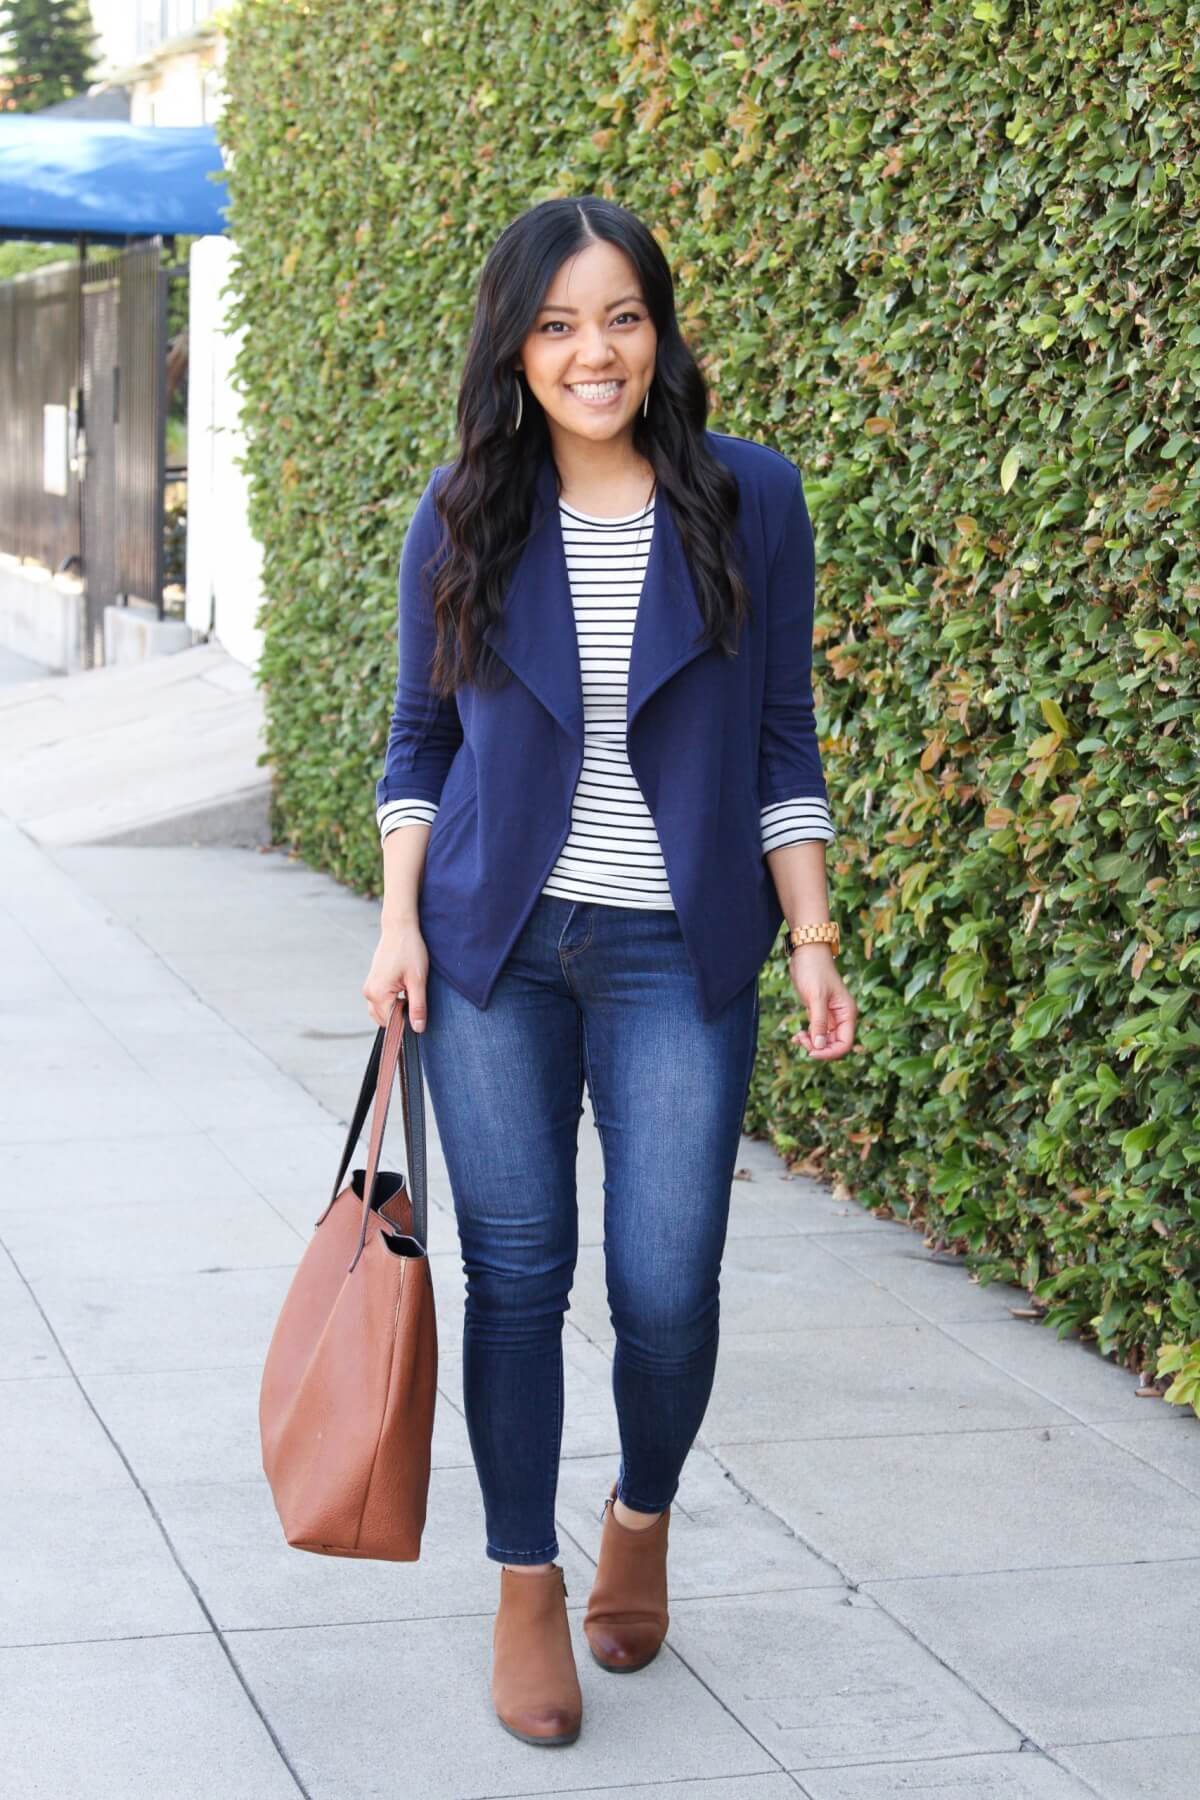 elevated casual outfit: black and white striped long sleeve tee + blue knit blazer + blue skinny jeans + white earrings + tan booties + tan tote